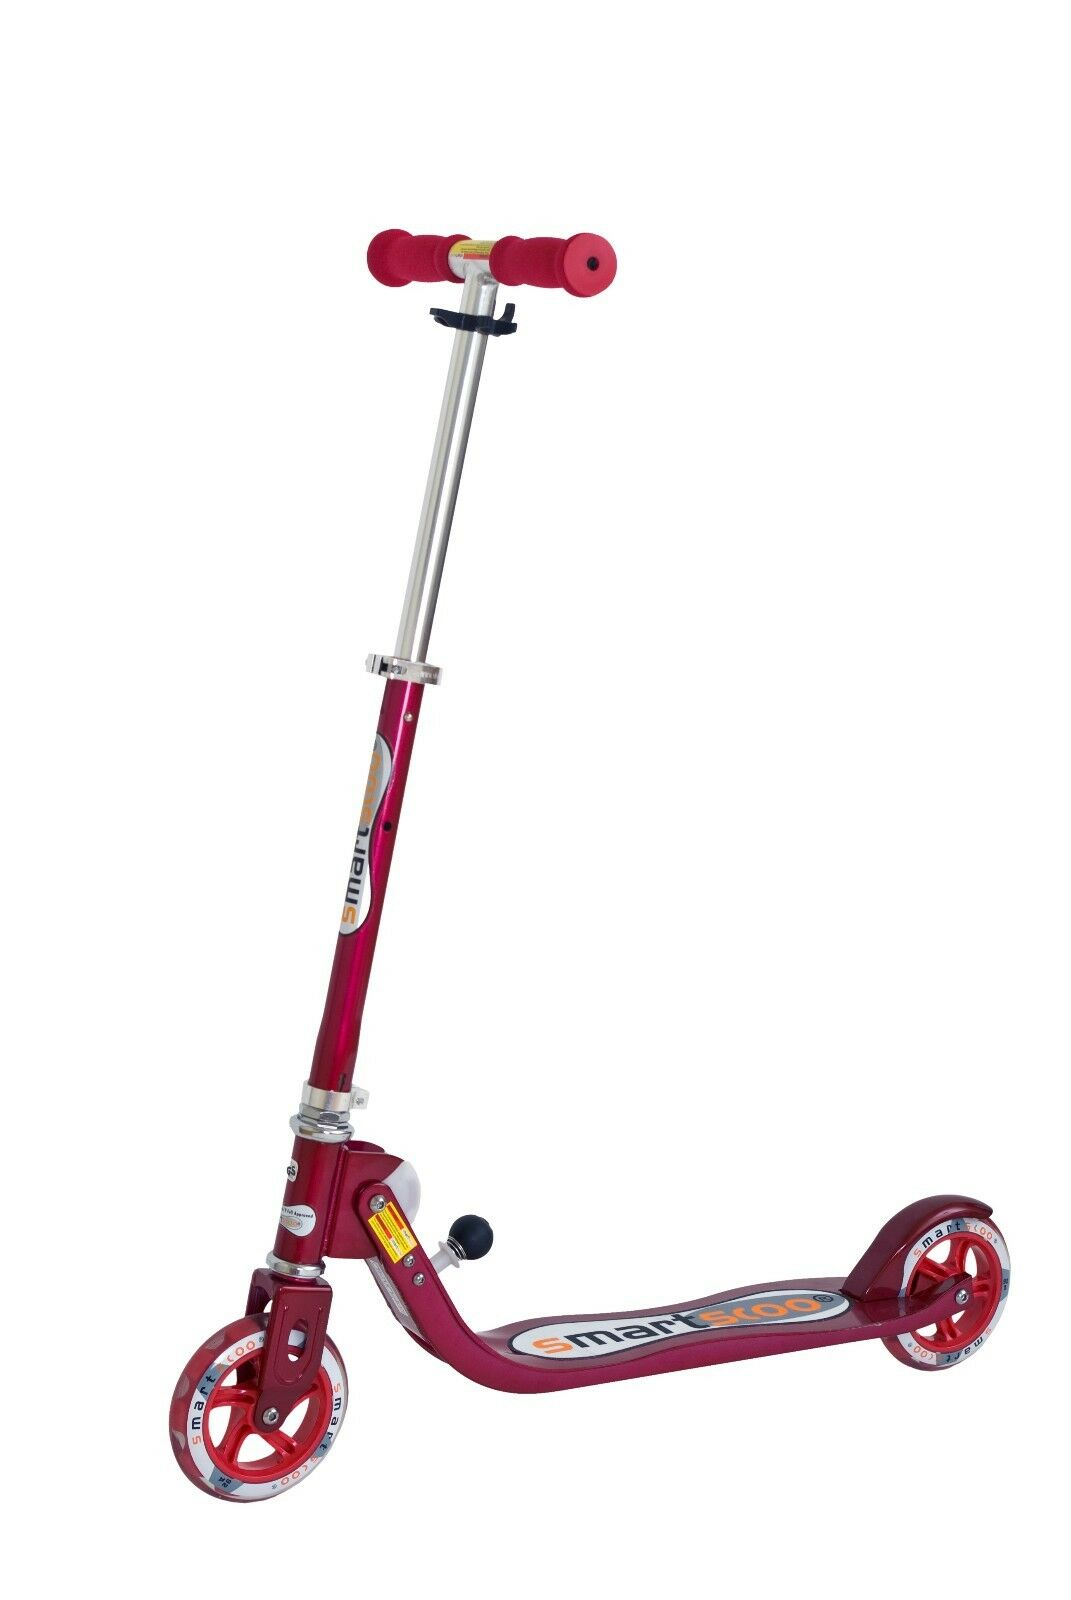 Scooter Smartscoo Big Wheel 144 mm ROT ROT Roller Cityroller von Area Trotinette